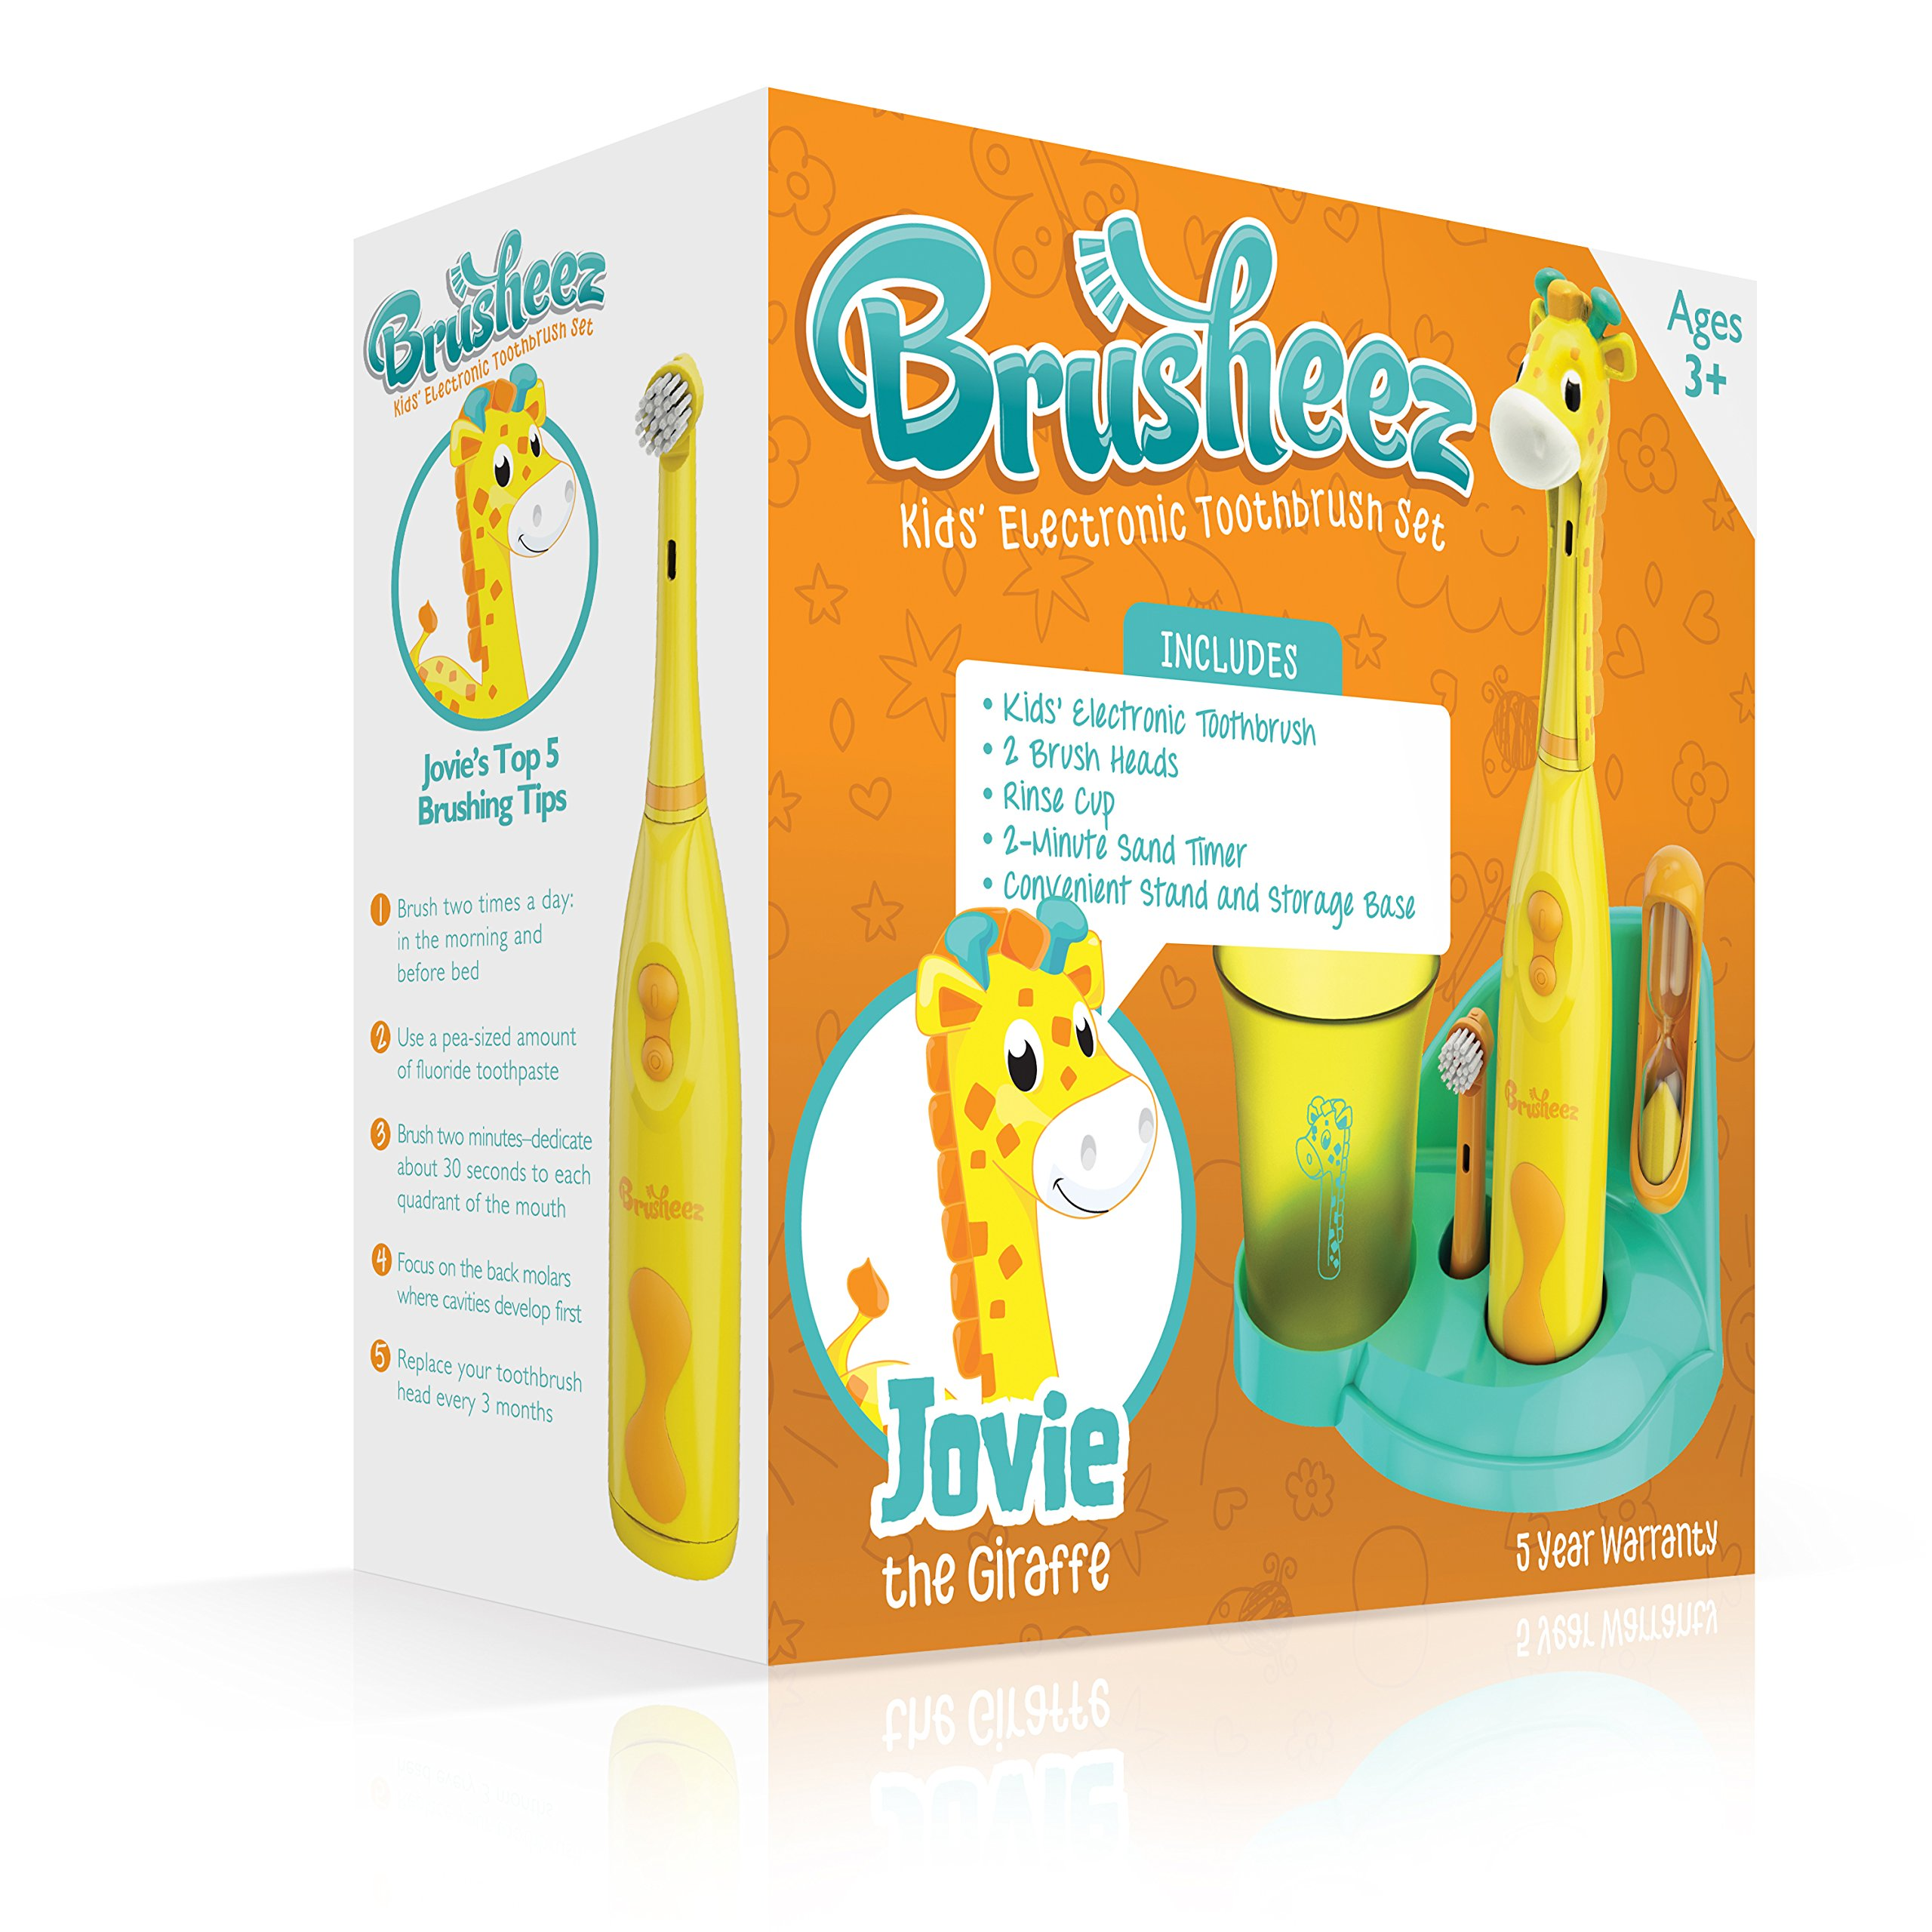 Brusheez Children's Electronic Toothbrush Set – Includes Battery-Powered Toothbrush, 2 Brush Heads, Cute Animal Head Cover, 2-Minute Sand Timer, Rinse Cup, and Storage Base - Jovie the Giraffe by Brusheez (Image #3)